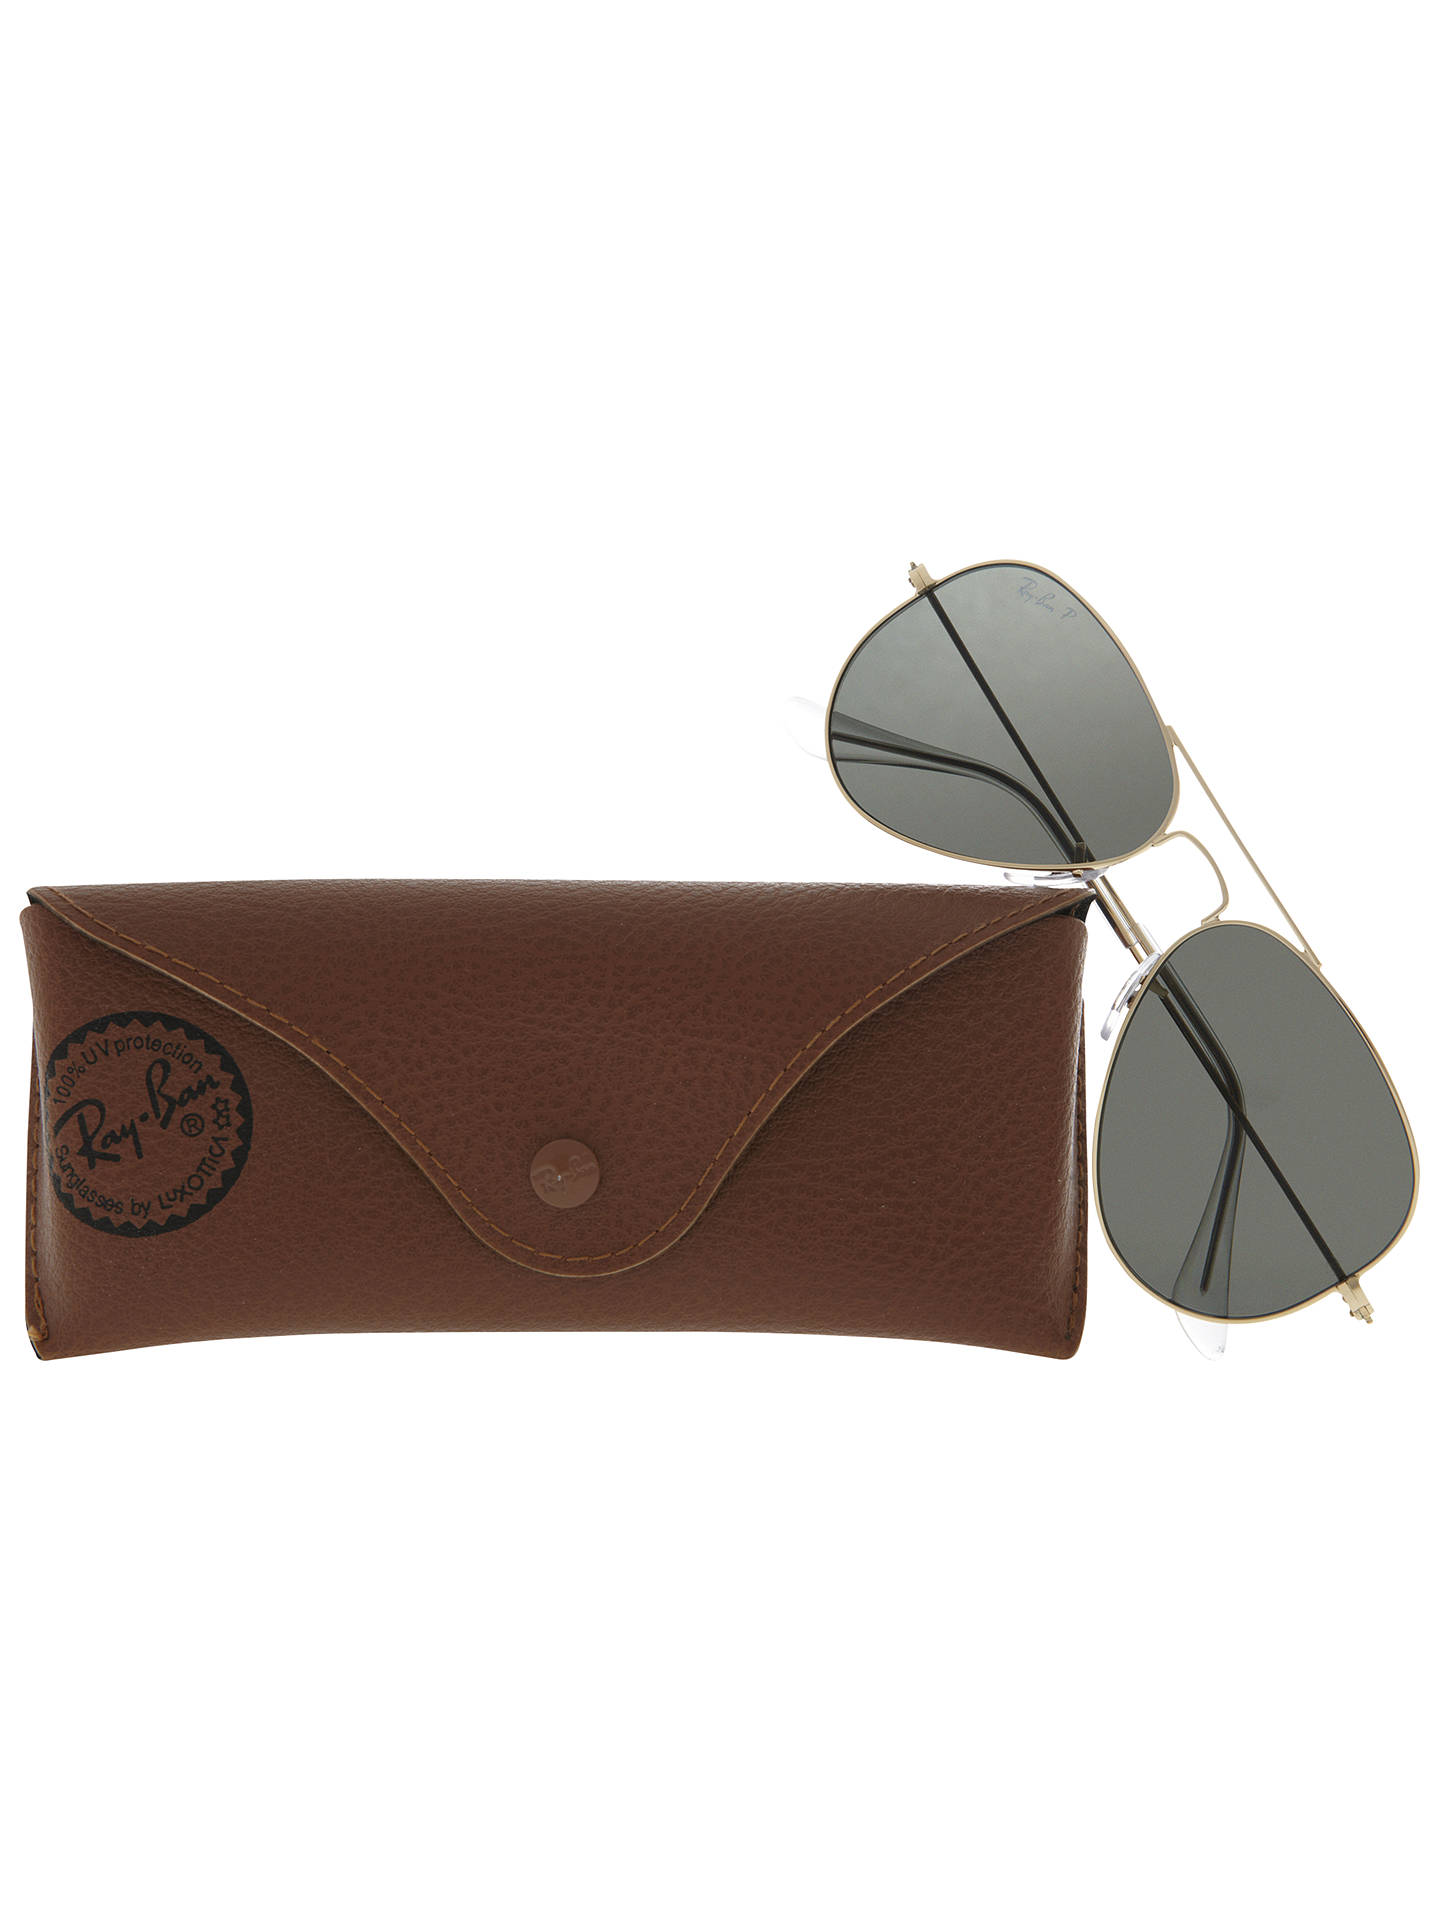 BuyRay-Ban RB3025 Polarised Aviator Sunglasses, Gold/Grey Online at johnlewis.com